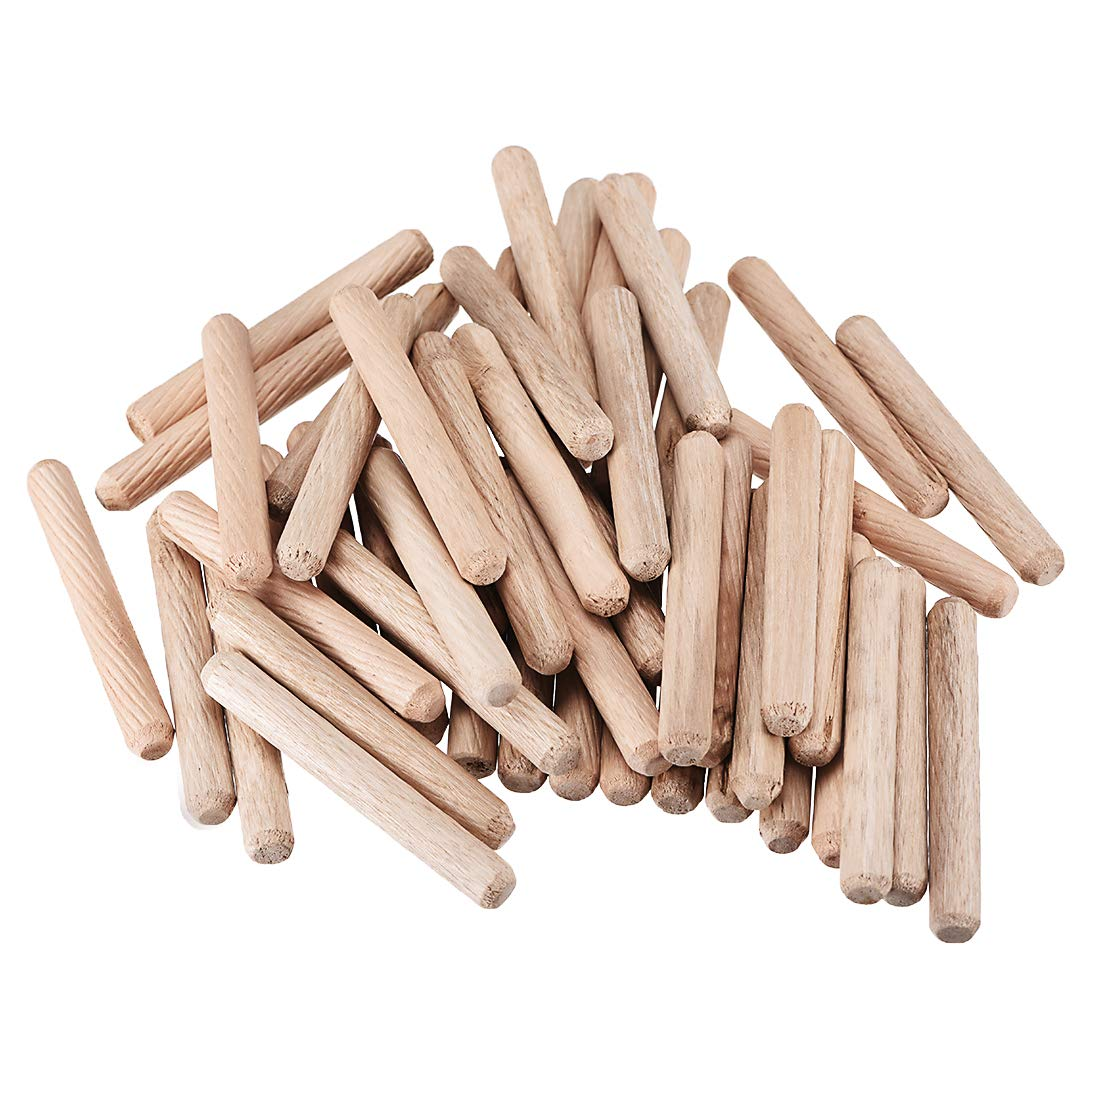 170 ASSORTED 5mm 6mm HARDWOOD DOWELS WOODEN CHAMFERED FLUTED PIN WOOD BEECHWOOD